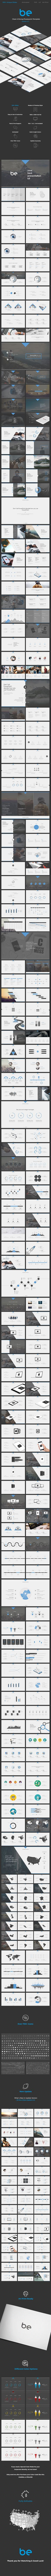 be Powerpoint (PowerPoint Templates)